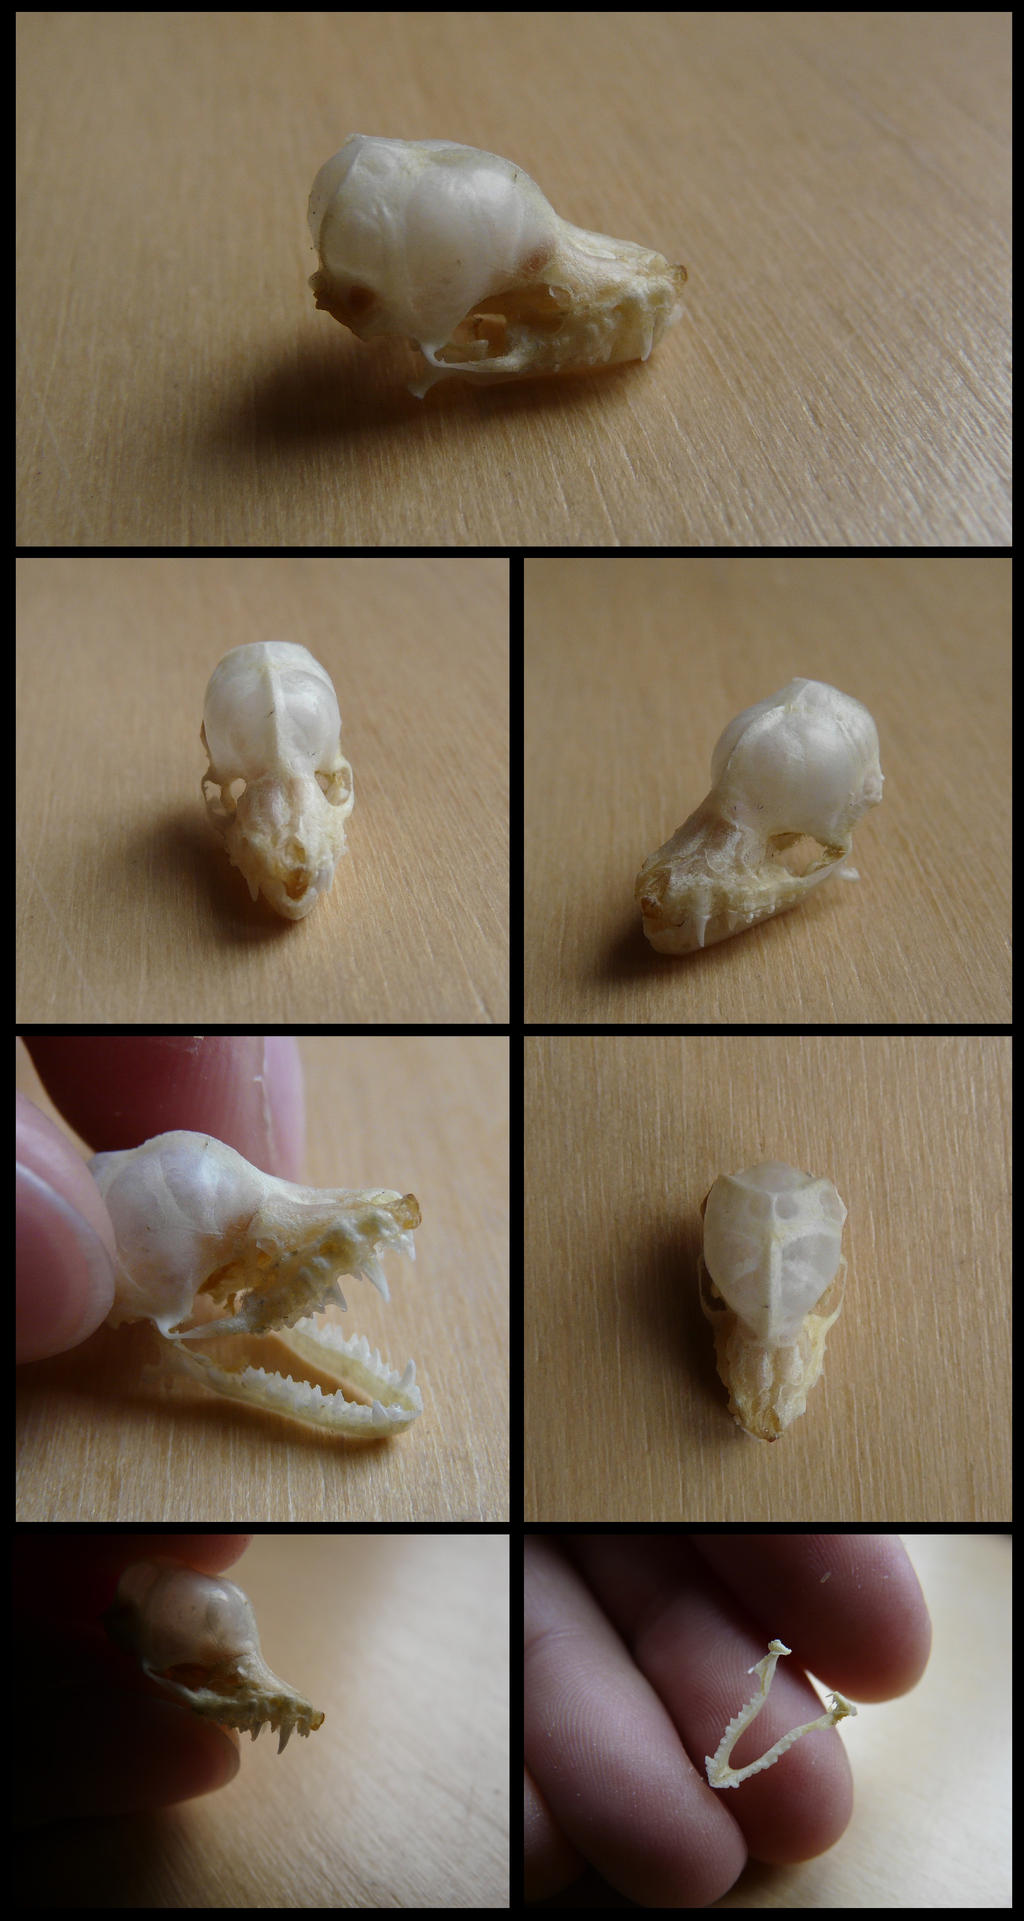 Intermediate Long-fingered Bat Skull by CabinetCuriosities